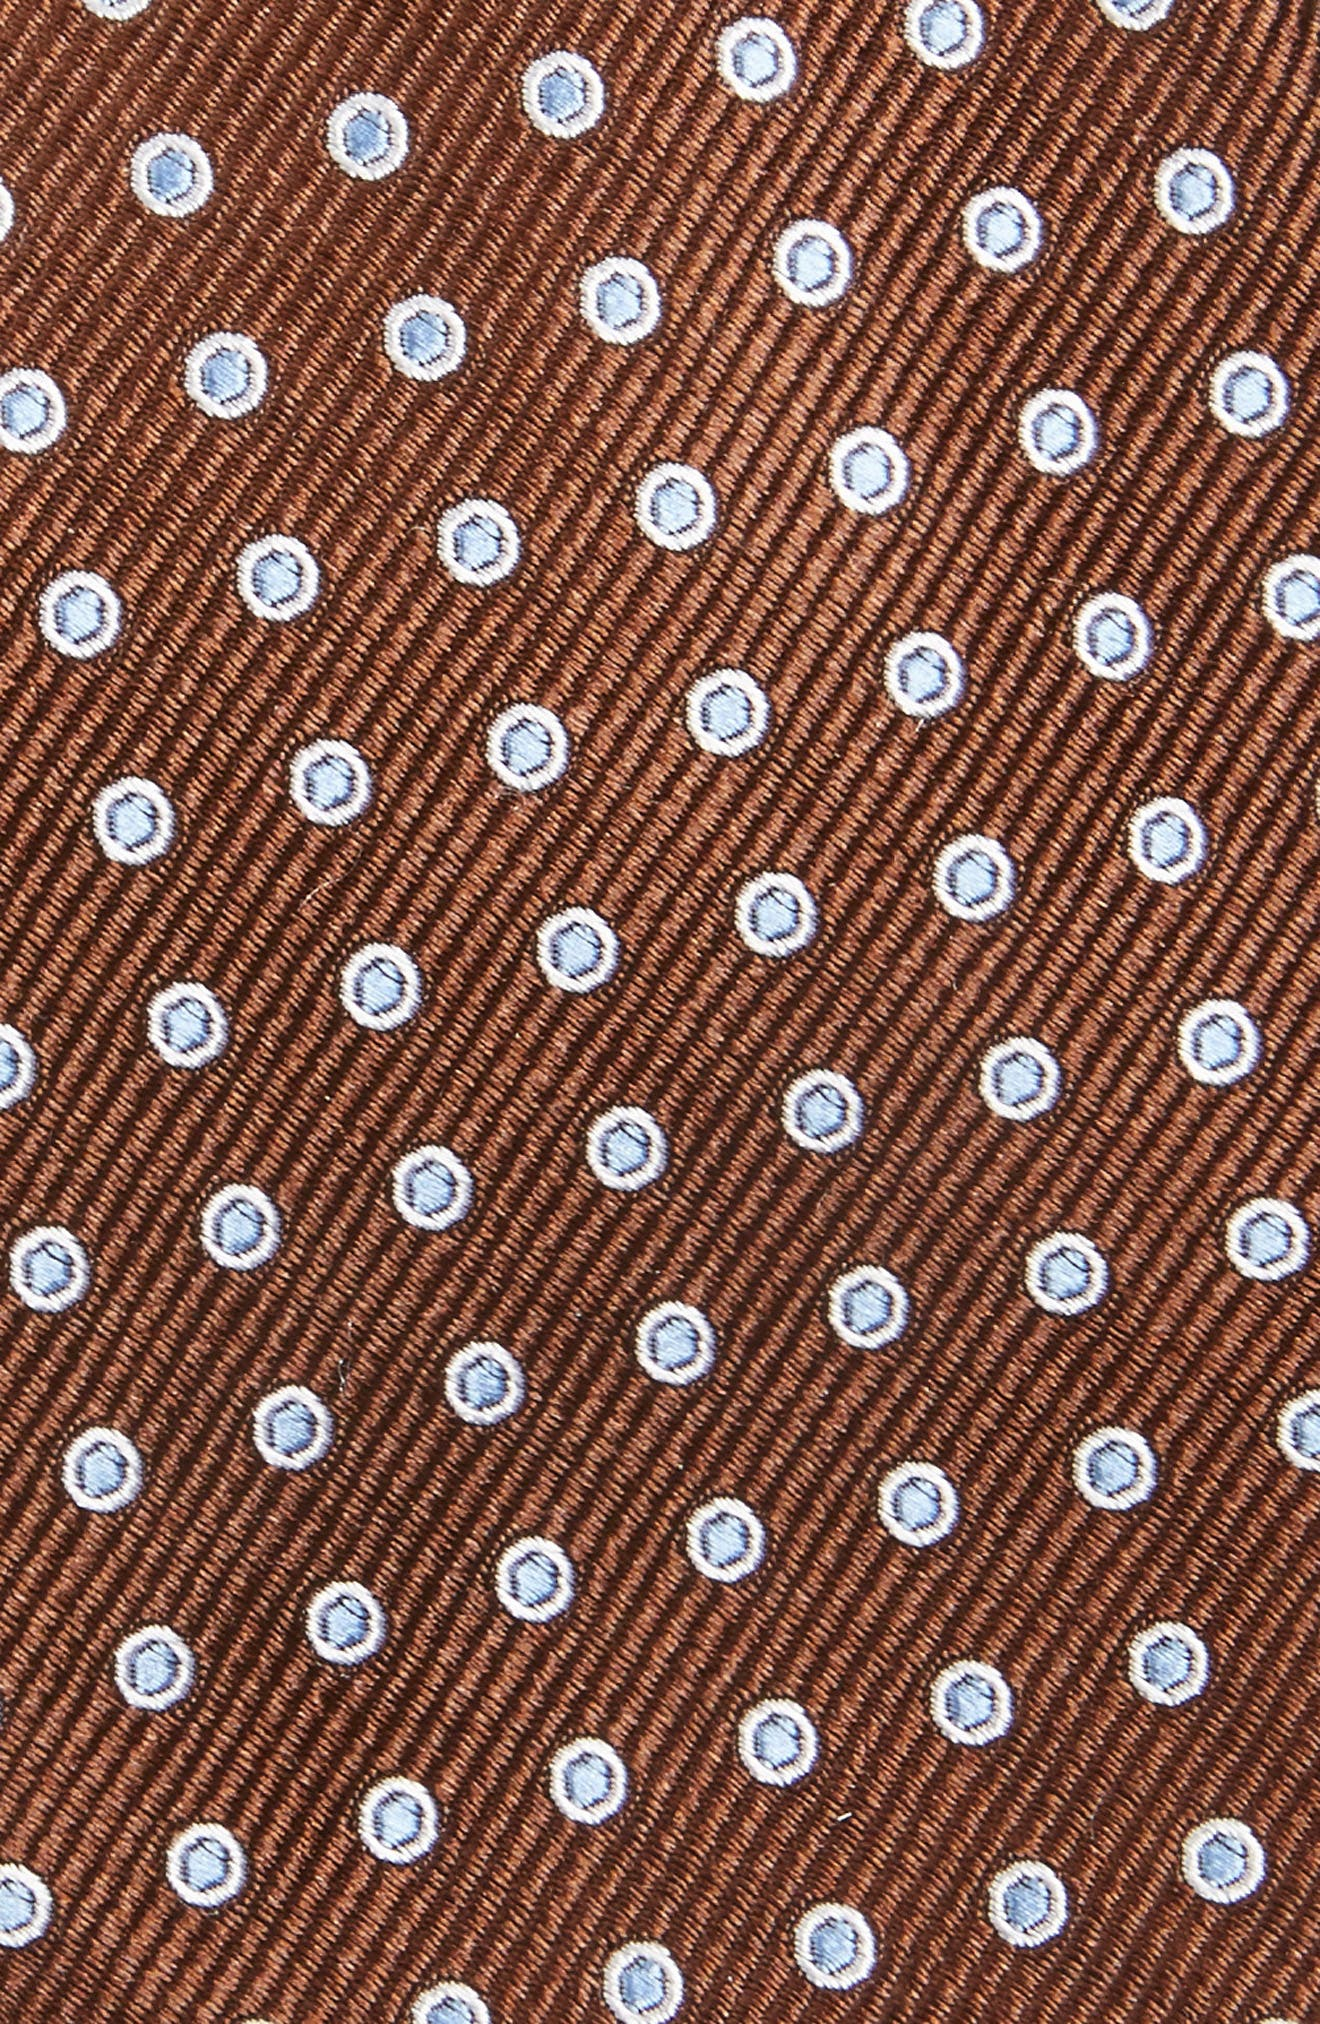 Halo Dot Silk Tie,                             Alternate thumbnail 2, color,                             Brown